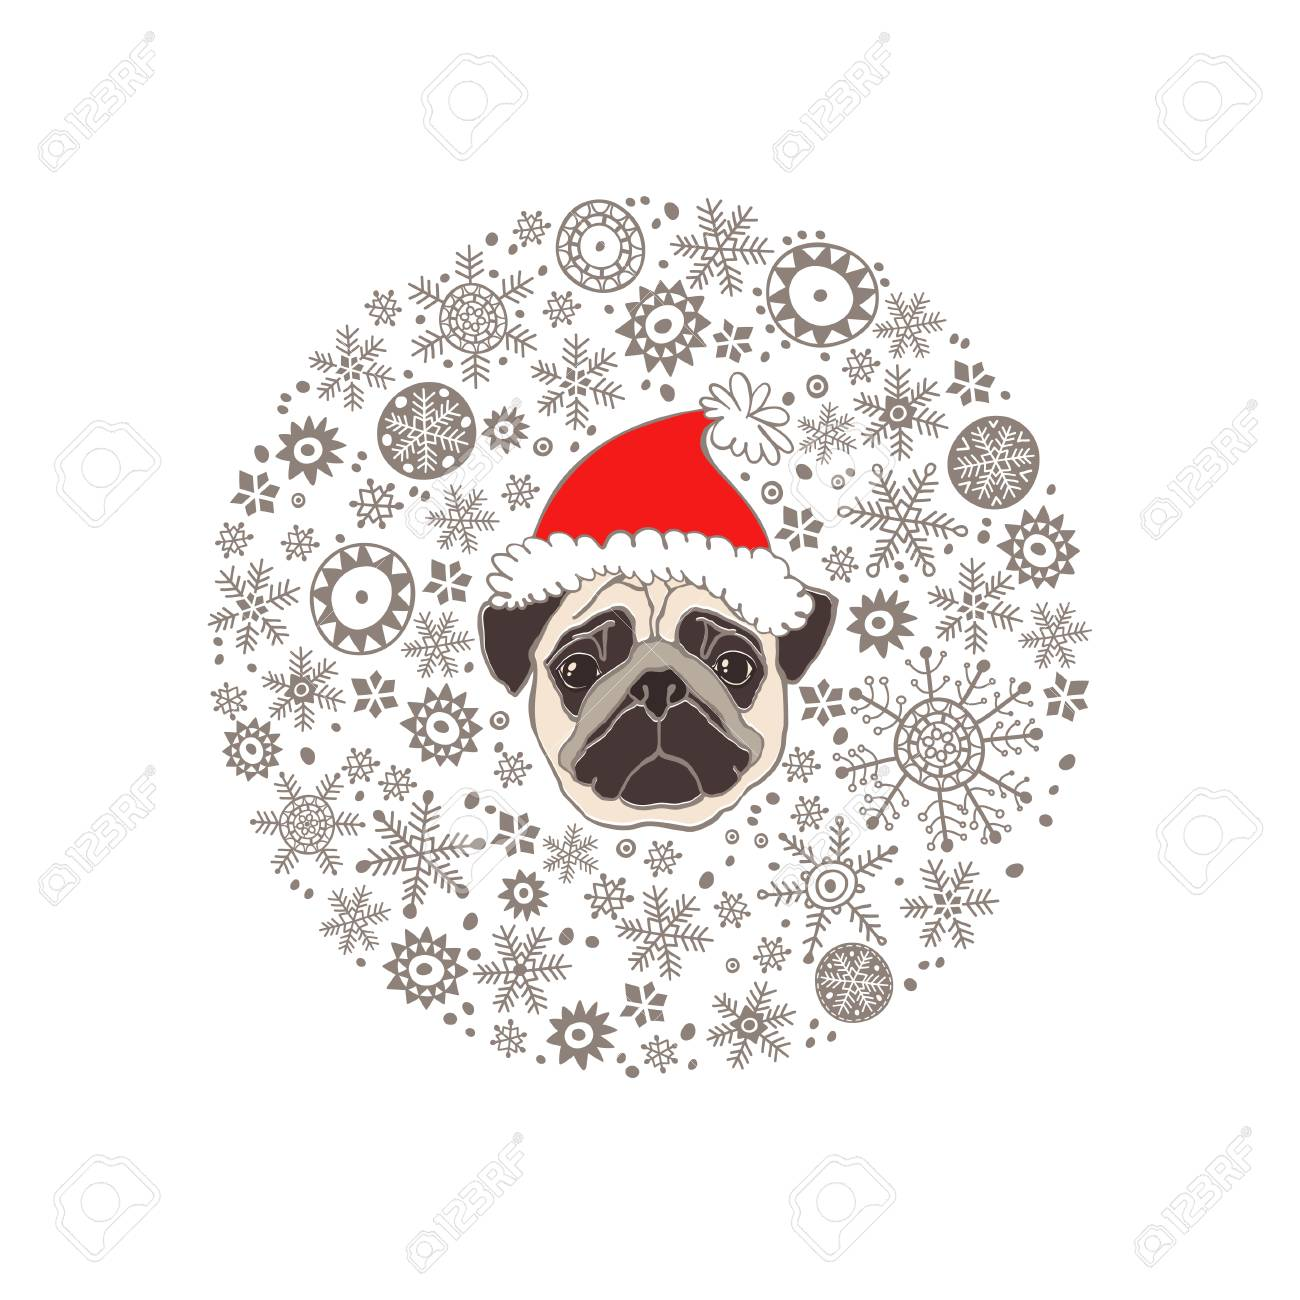 fd6c9e0b95d Pug in Santa s hat and snowflakes. Dog-animal symbol of new year 2018.